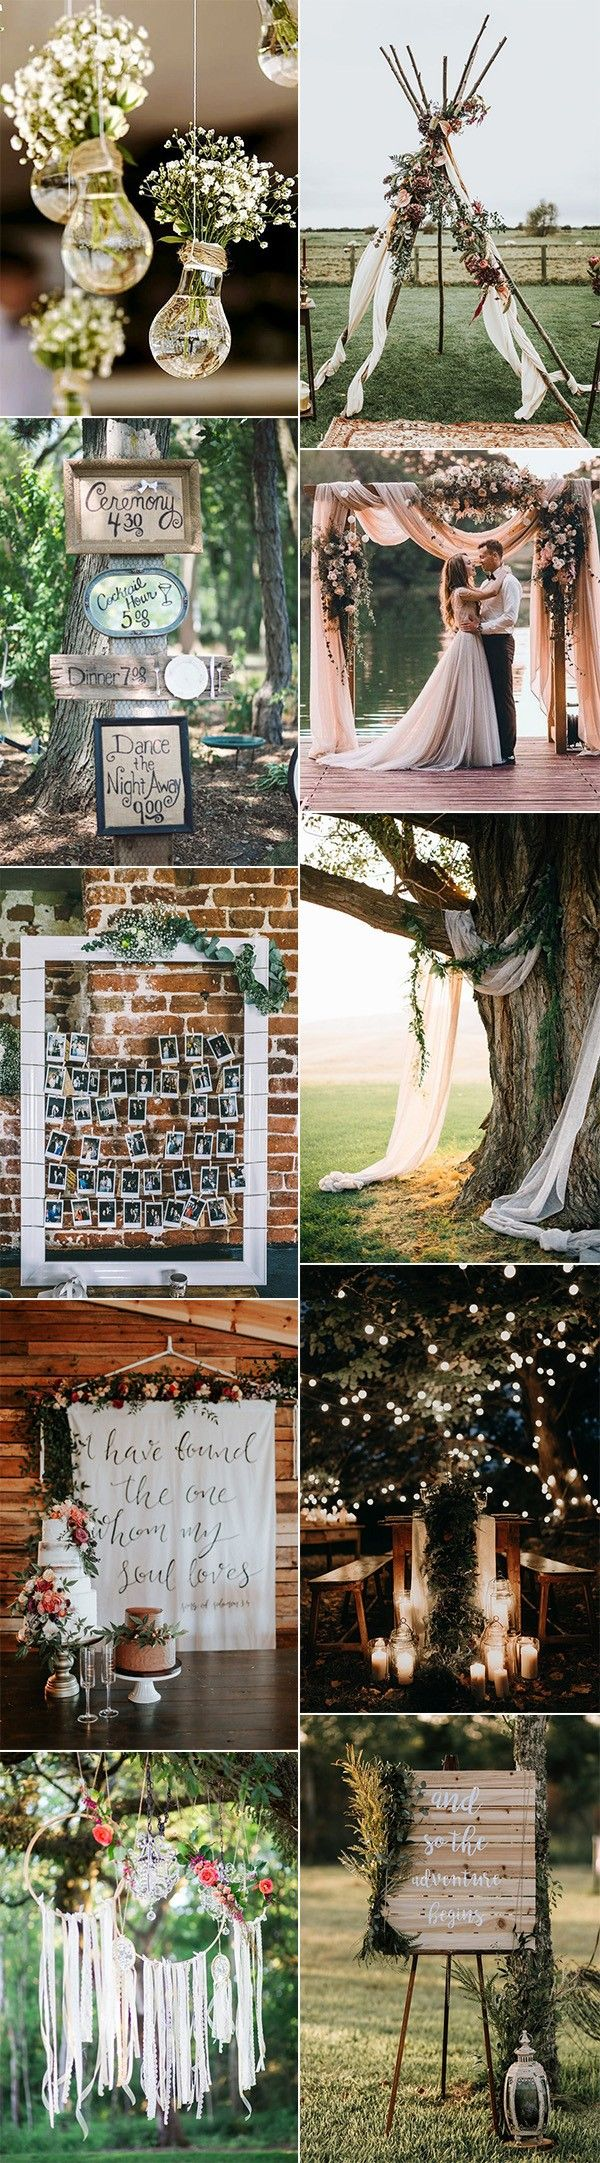 Wedding decoration ideas 2018  Trending Boho Chic Wedding Ideas for   Page  of